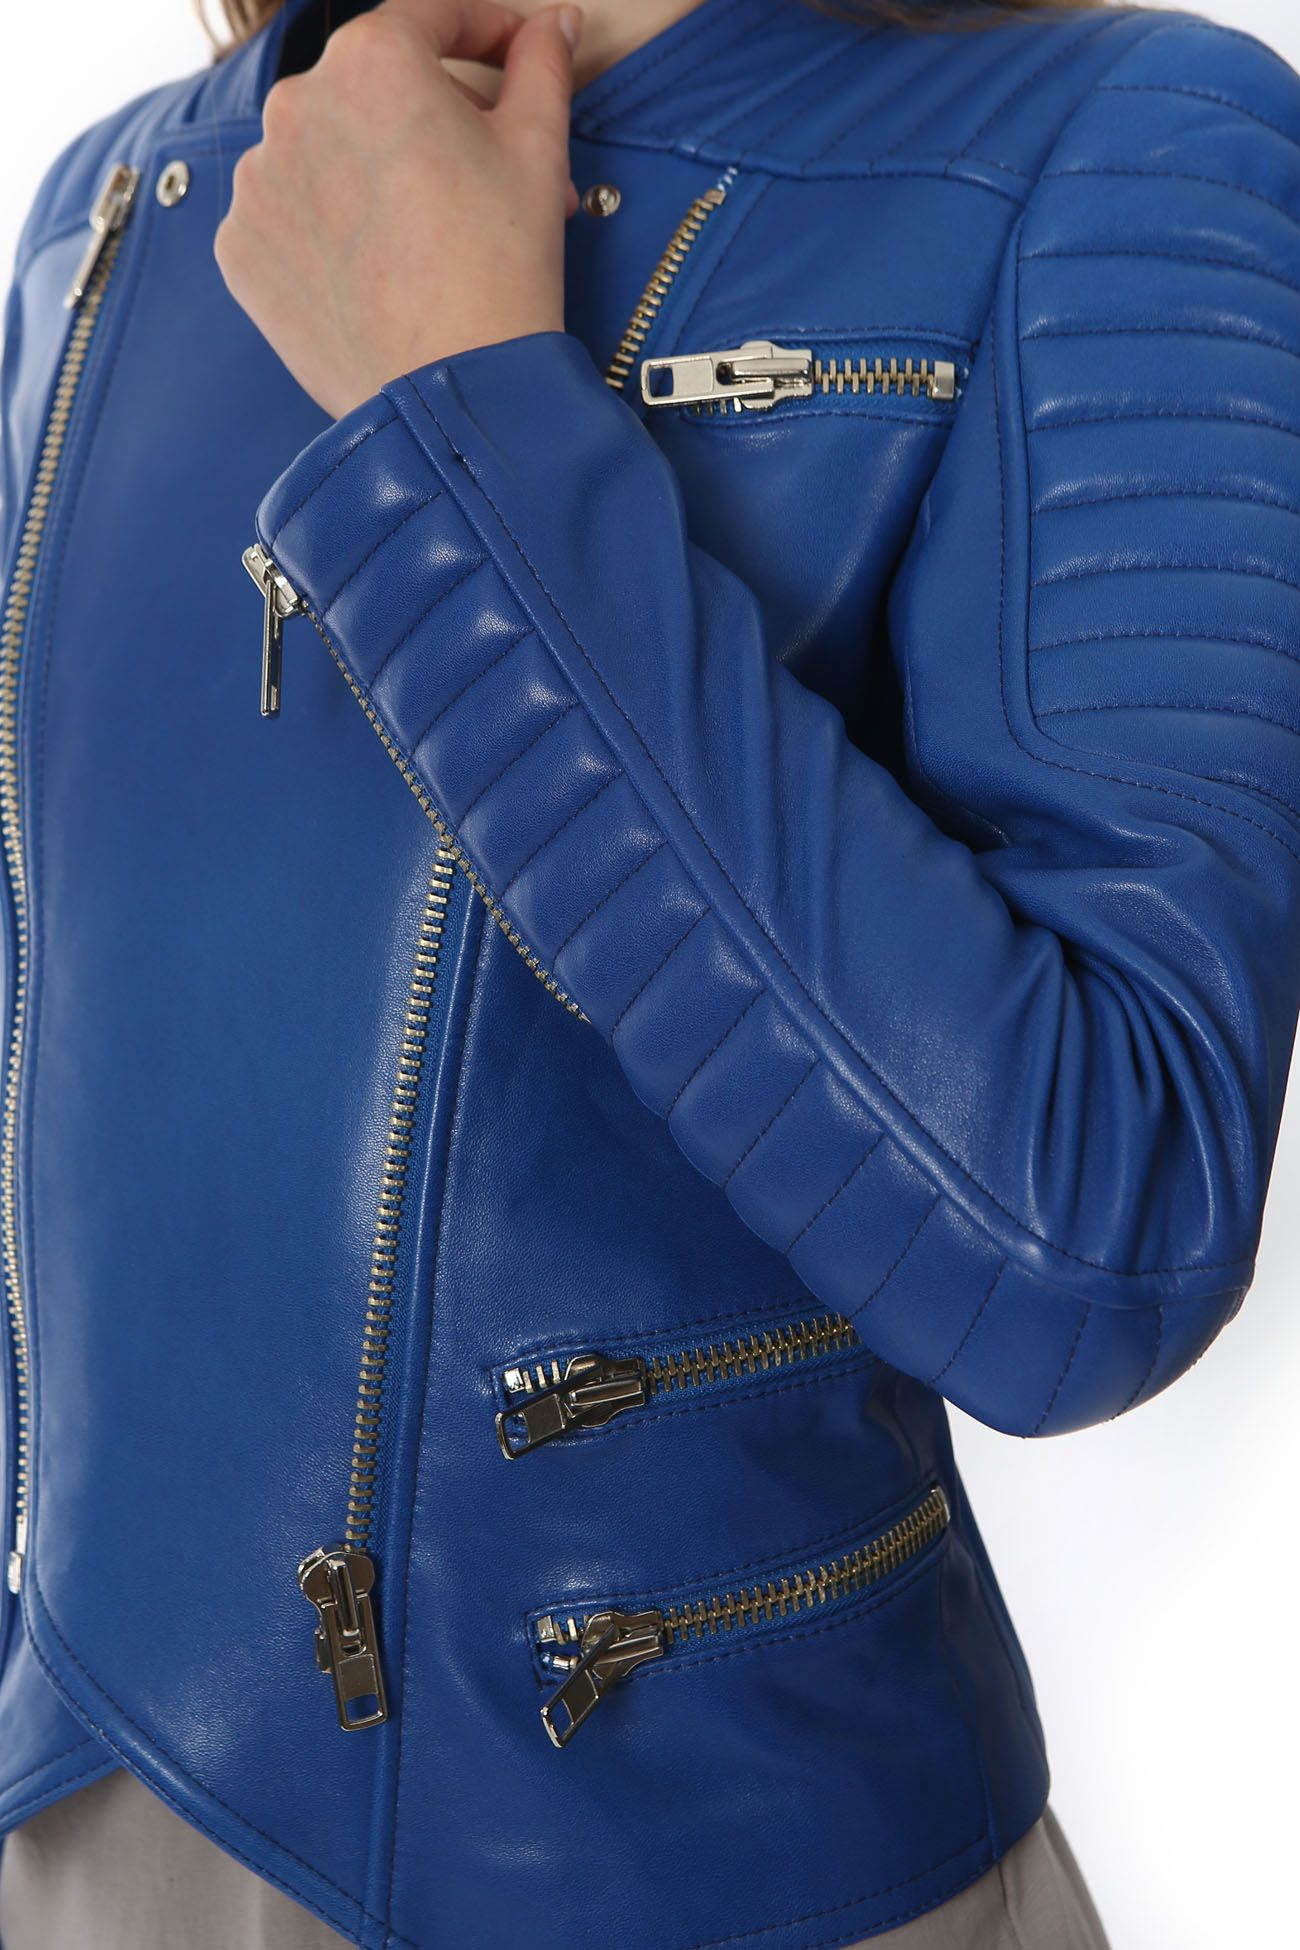 Blue Quilted Leather Jacket Minusey Blue leather